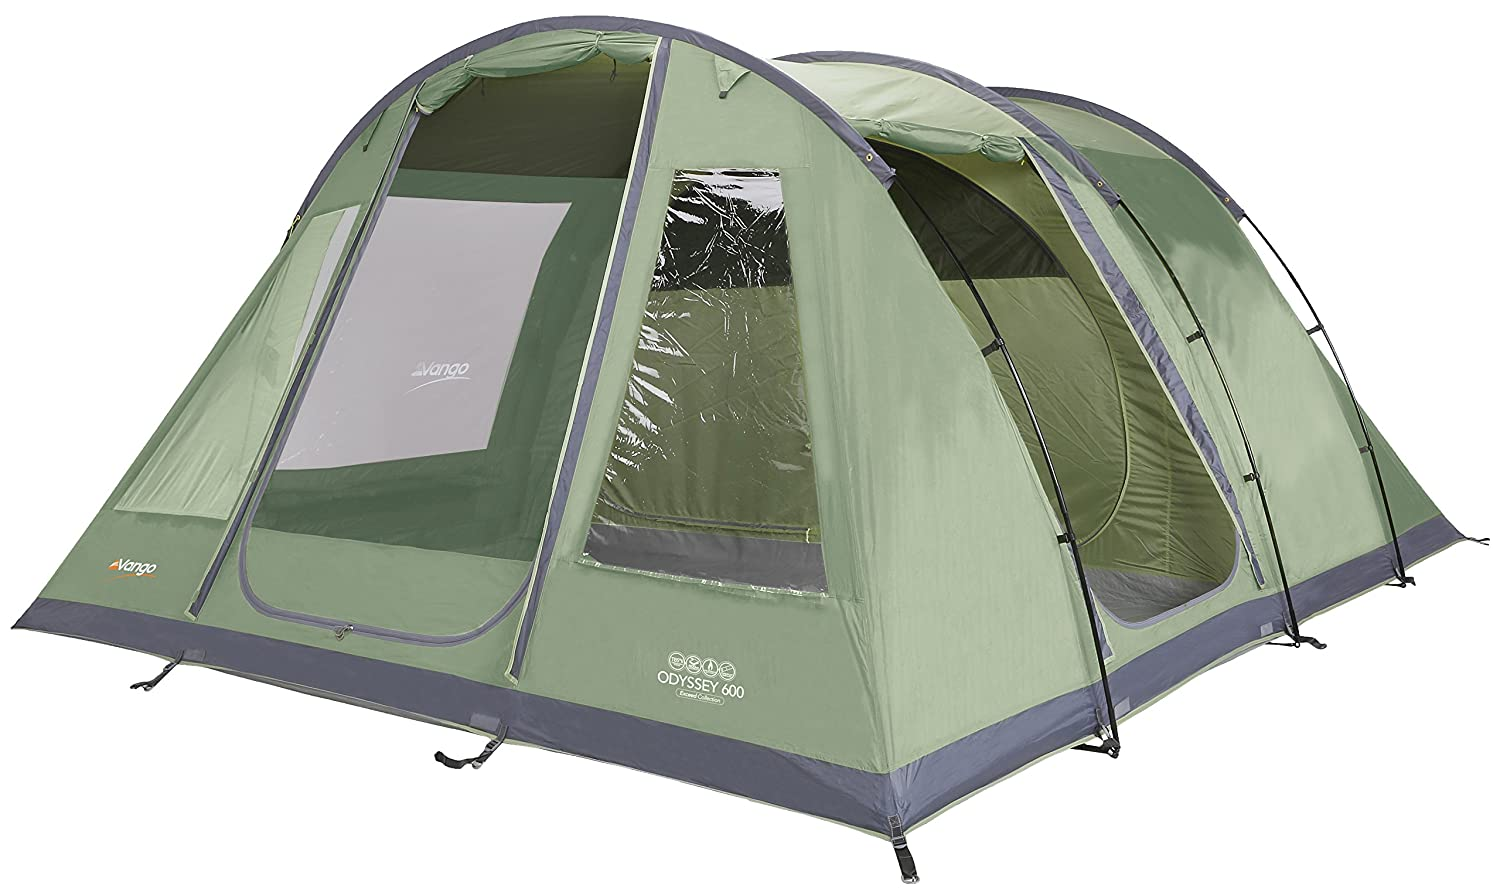 Amazon.com  Vango 6 Person Odyssey 600 Tent Herbal  Sports u0026 Outdoors  sc 1 st  Amazon.com & Amazon.com : Vango 6 Person Odyssey 600 Tent Herbal : Sports ...